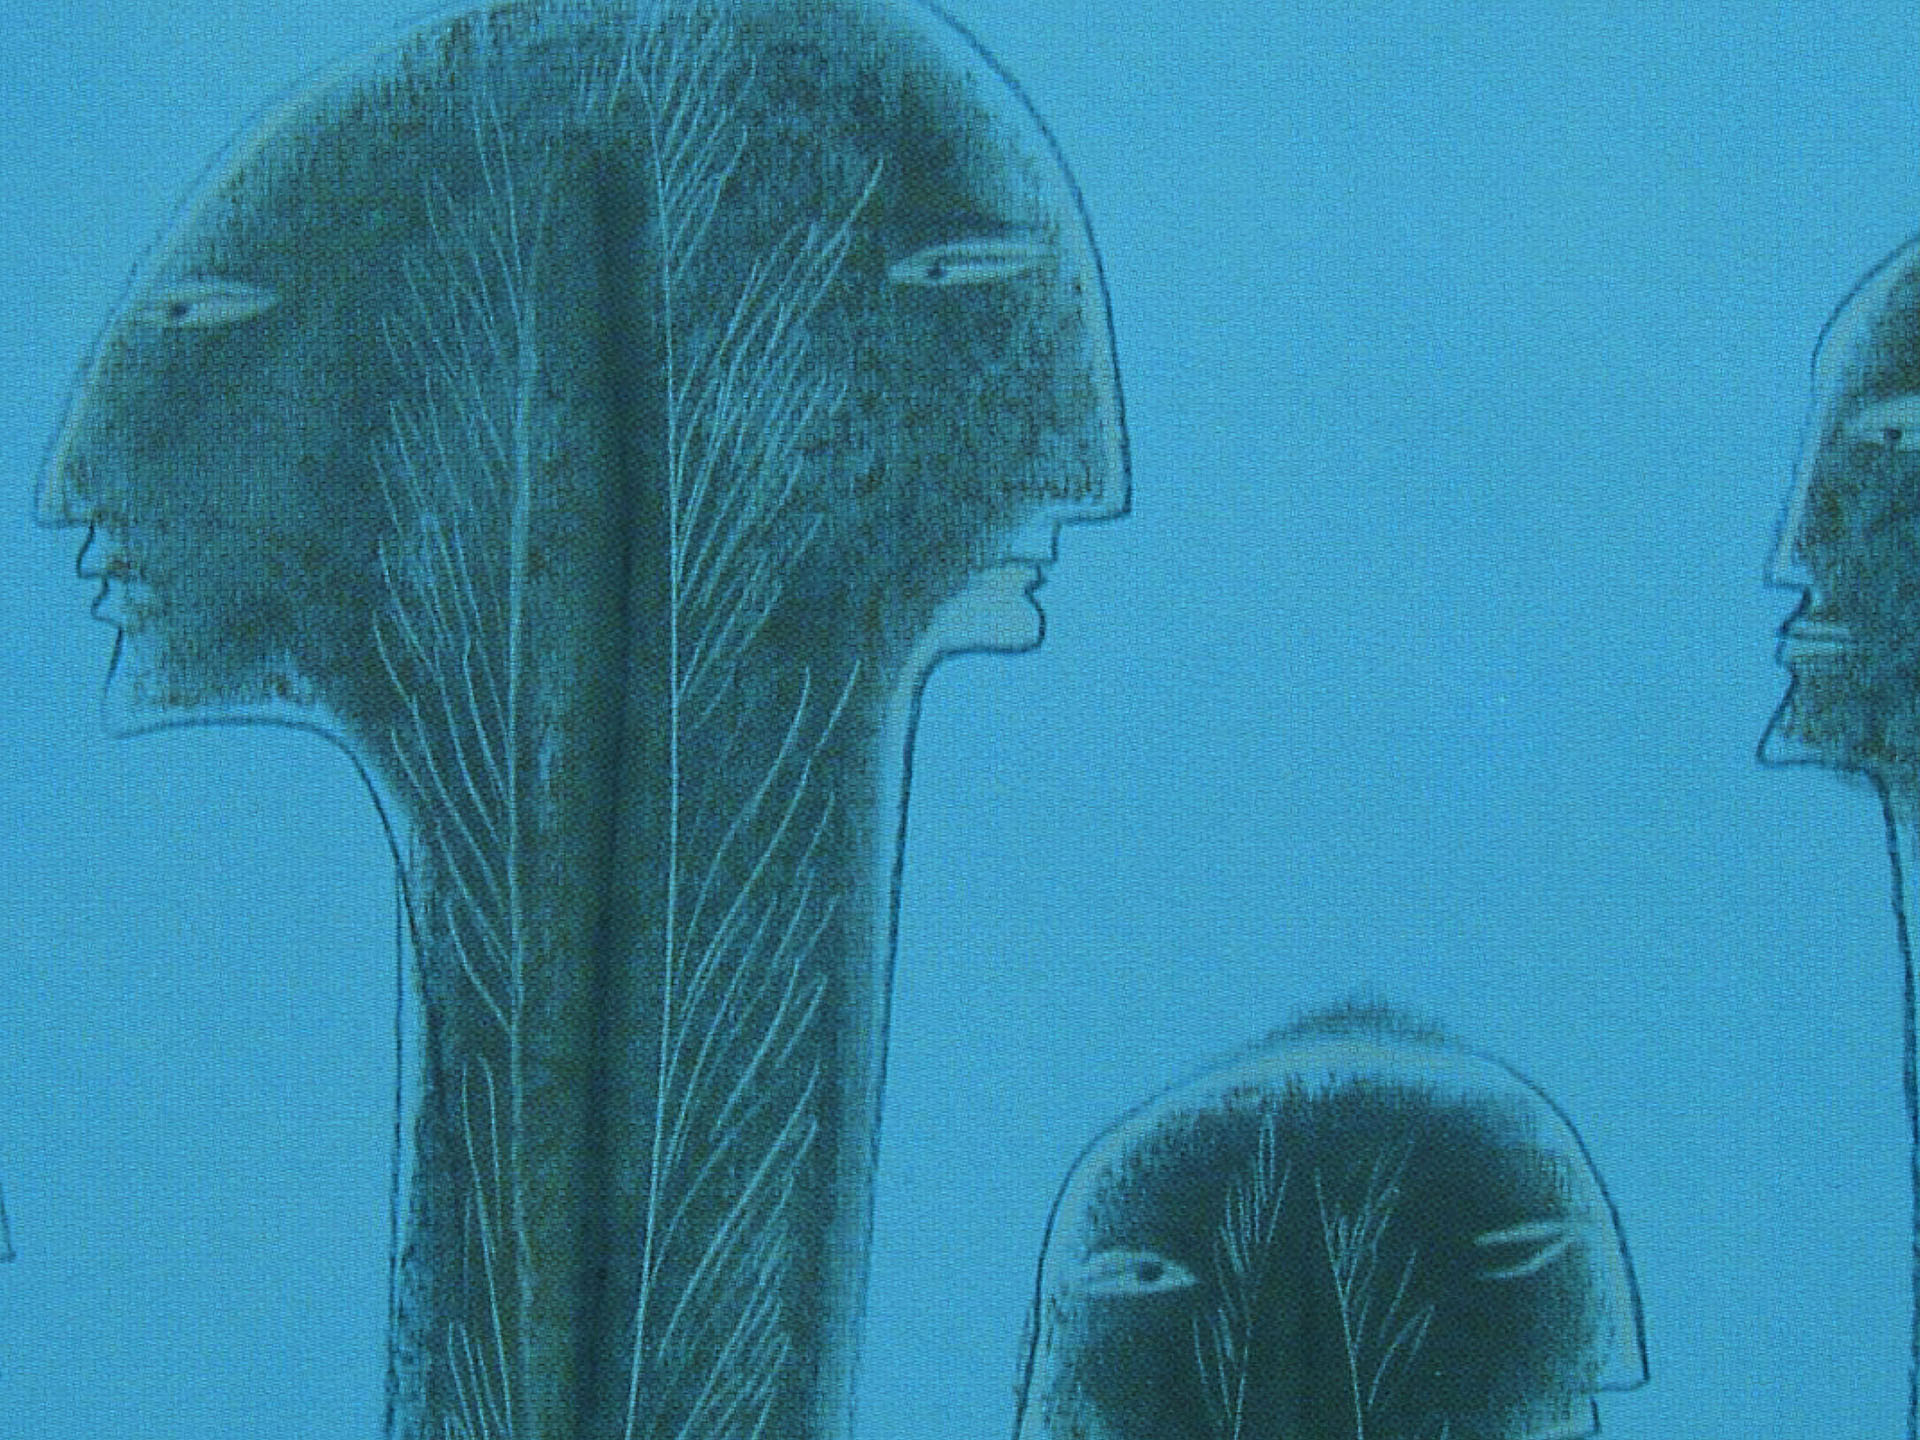 Blue illustration of heads for J-CASTE journal